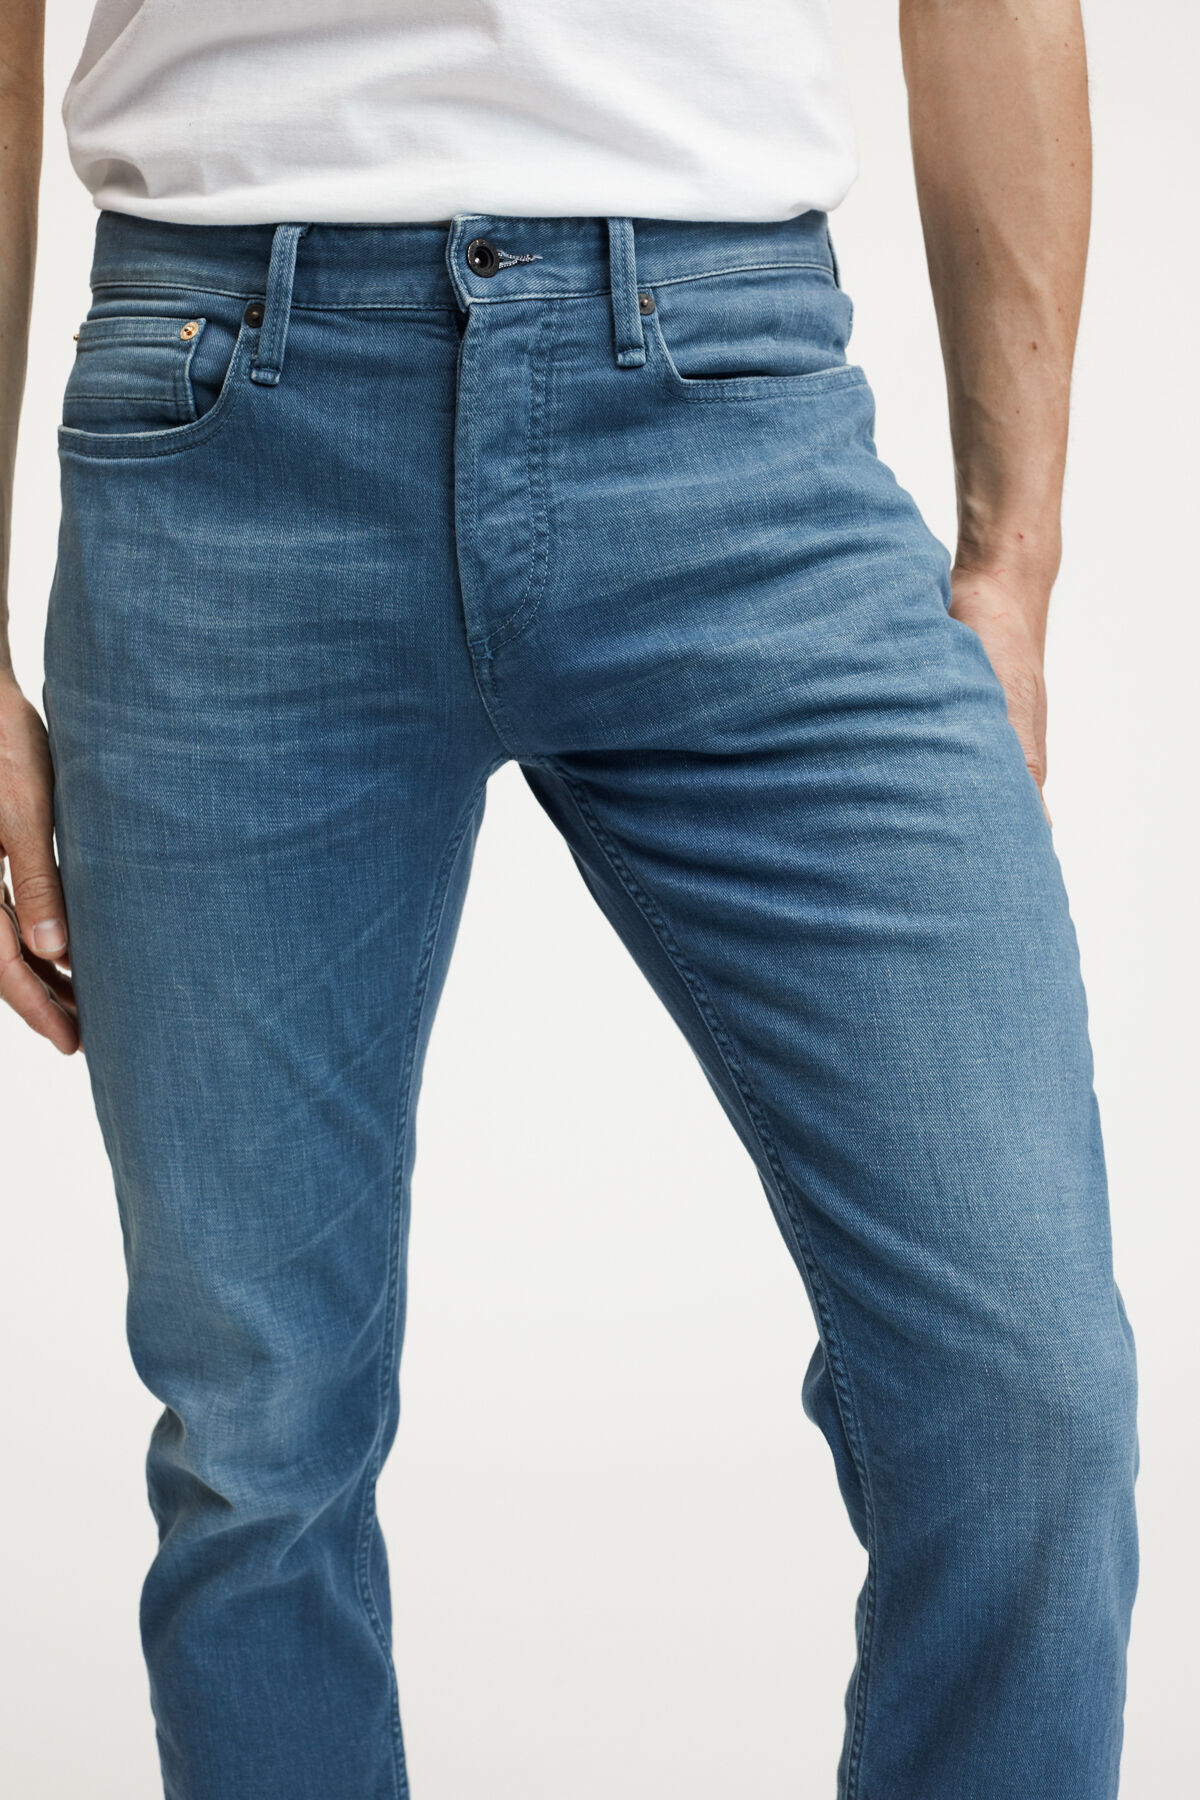 RAZOR Left-hand Fresh Blue Denim - Slim FIt